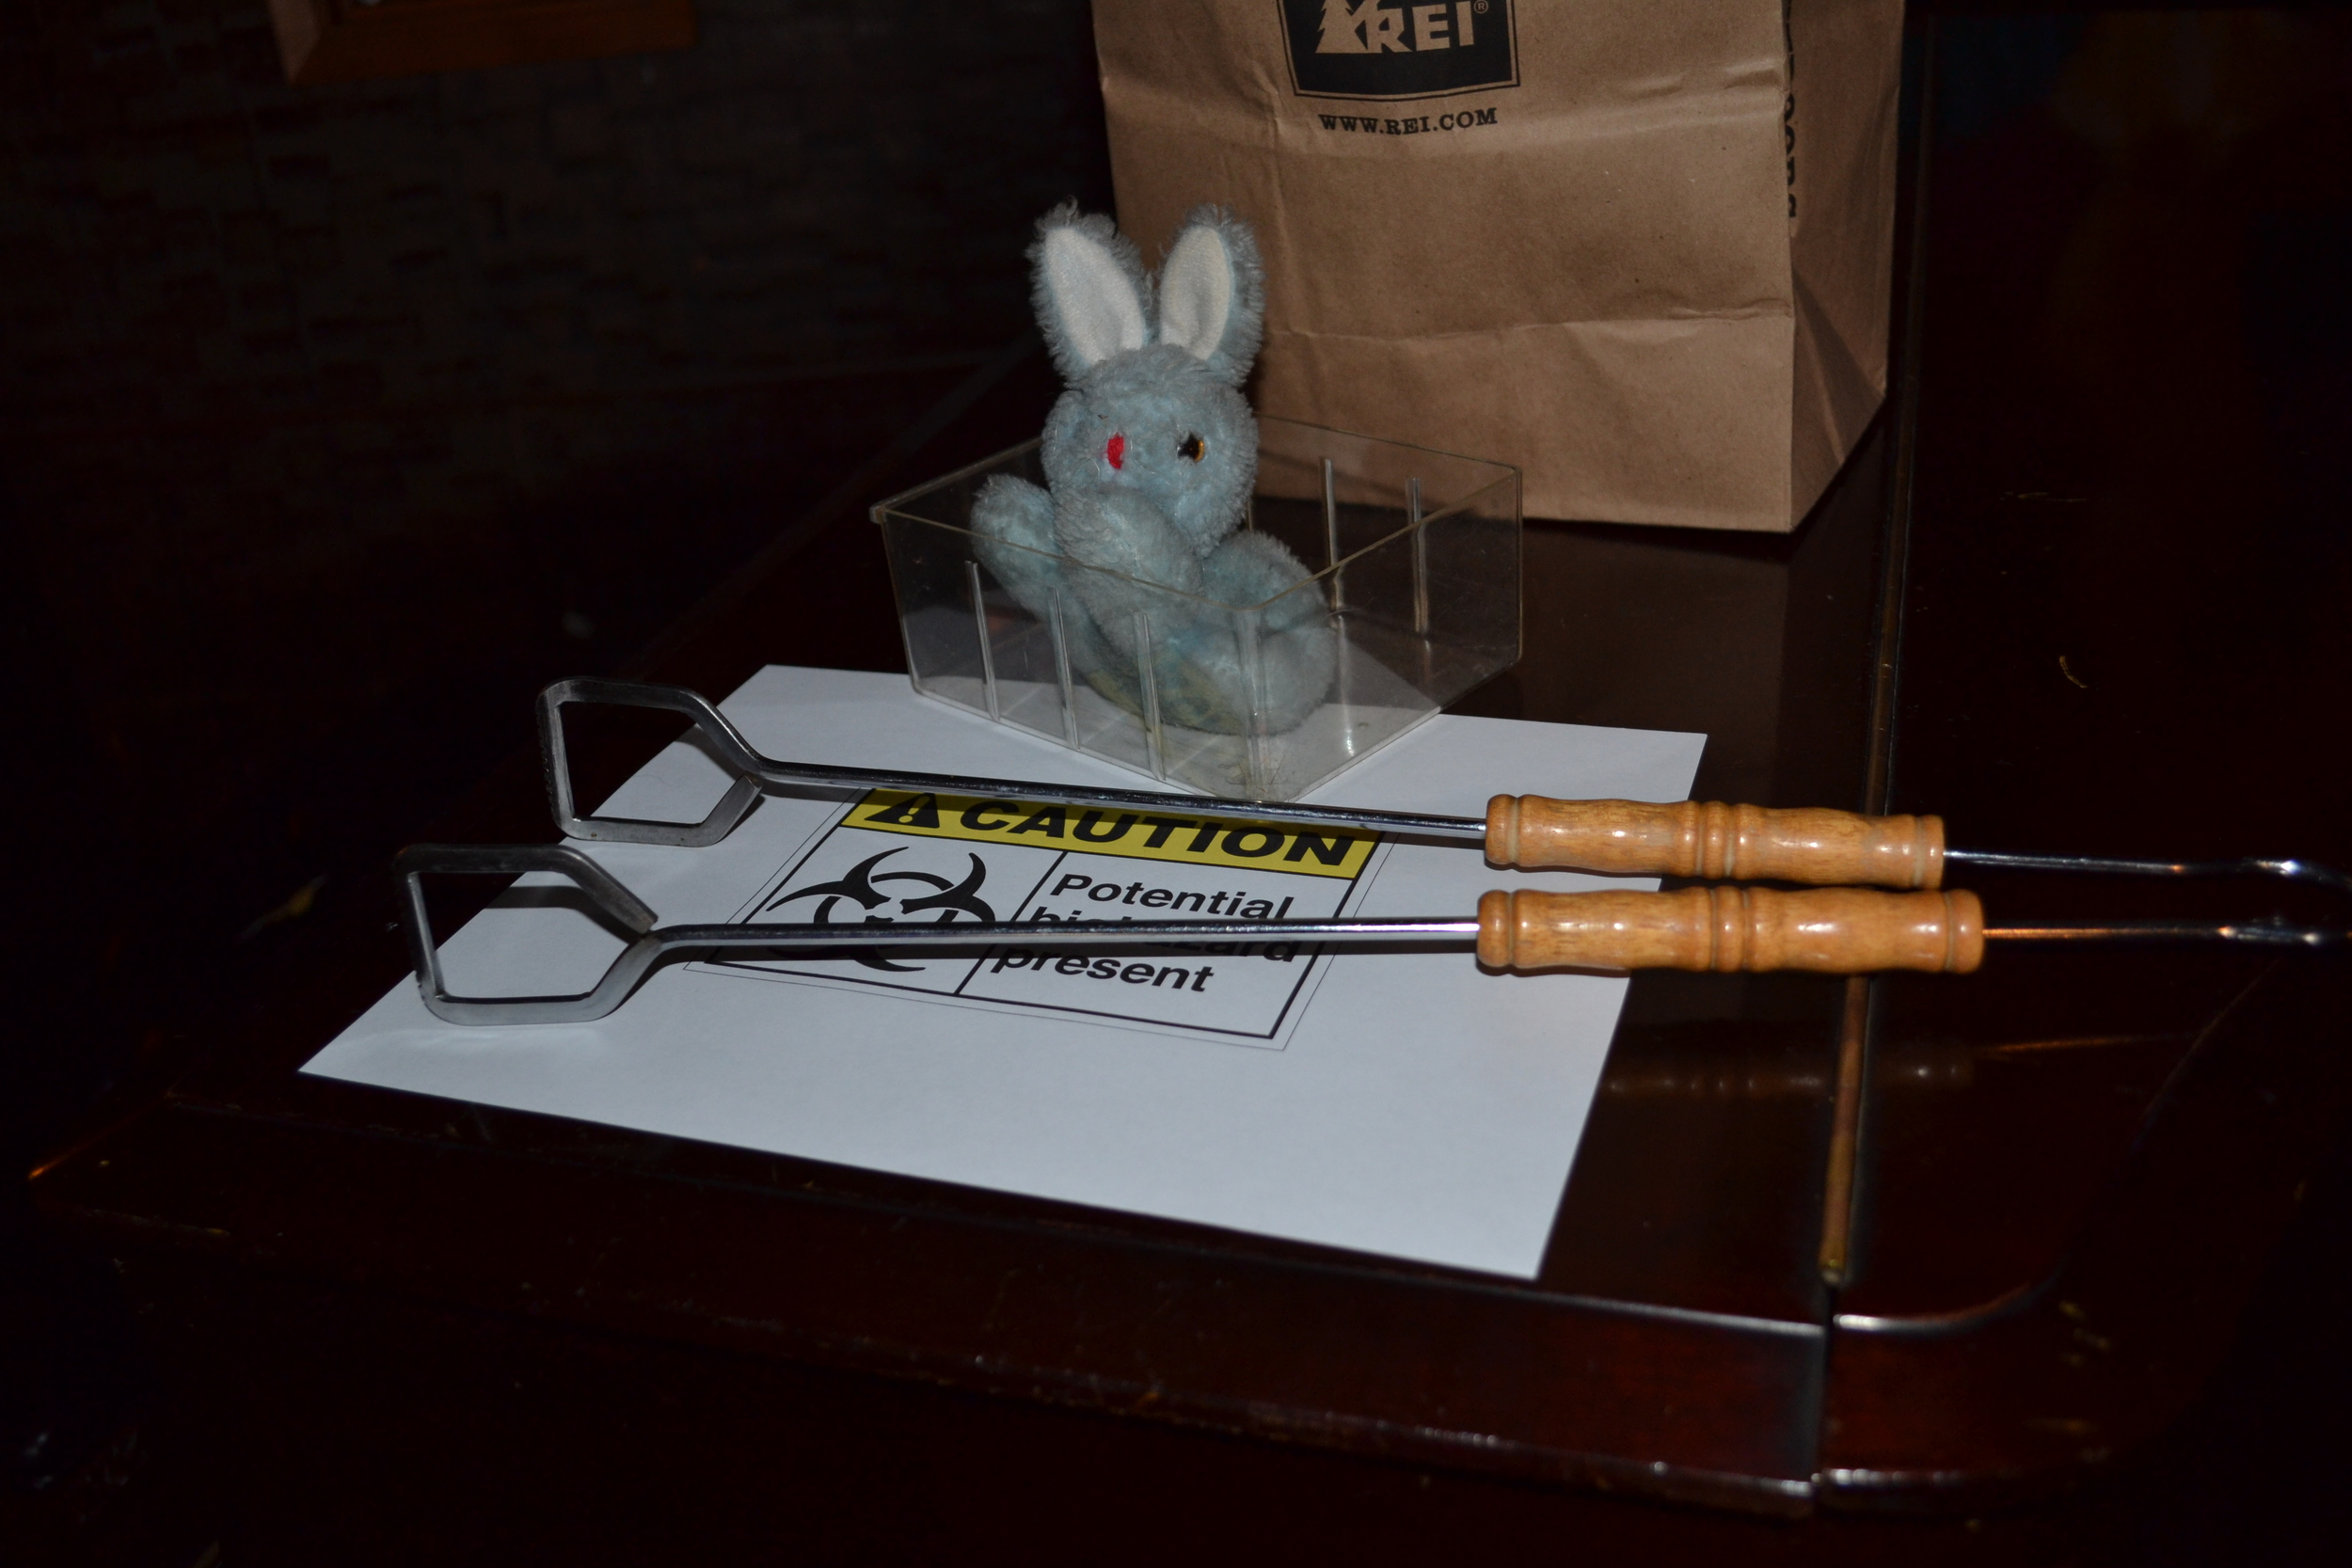 Blue Bunny - handle with care!